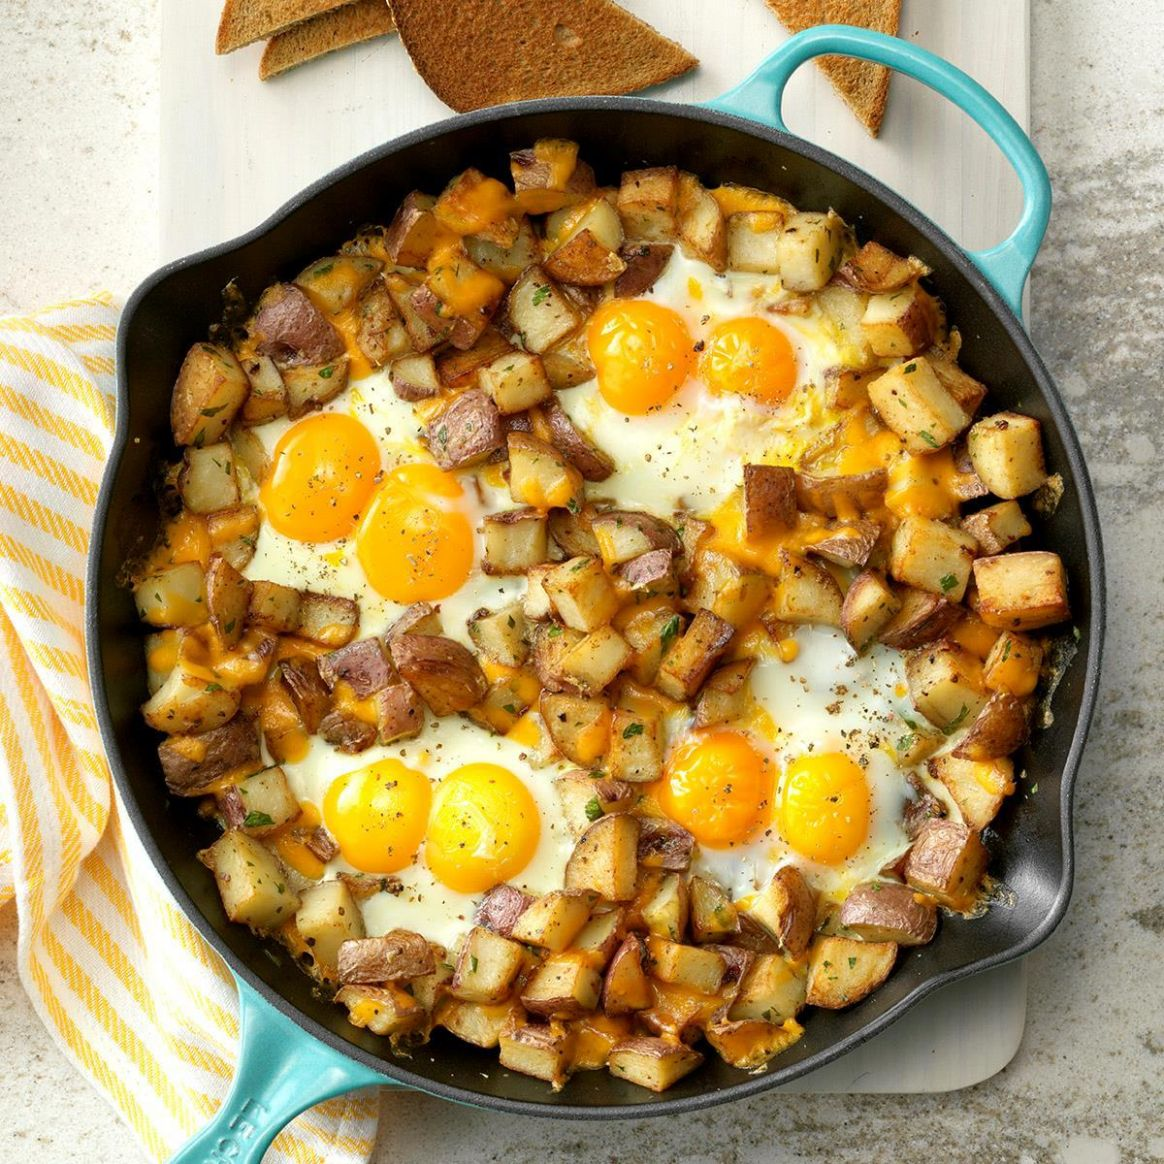 Baked Cheddar Eggs & Potatoes - Breakfast Recipes With Eggs